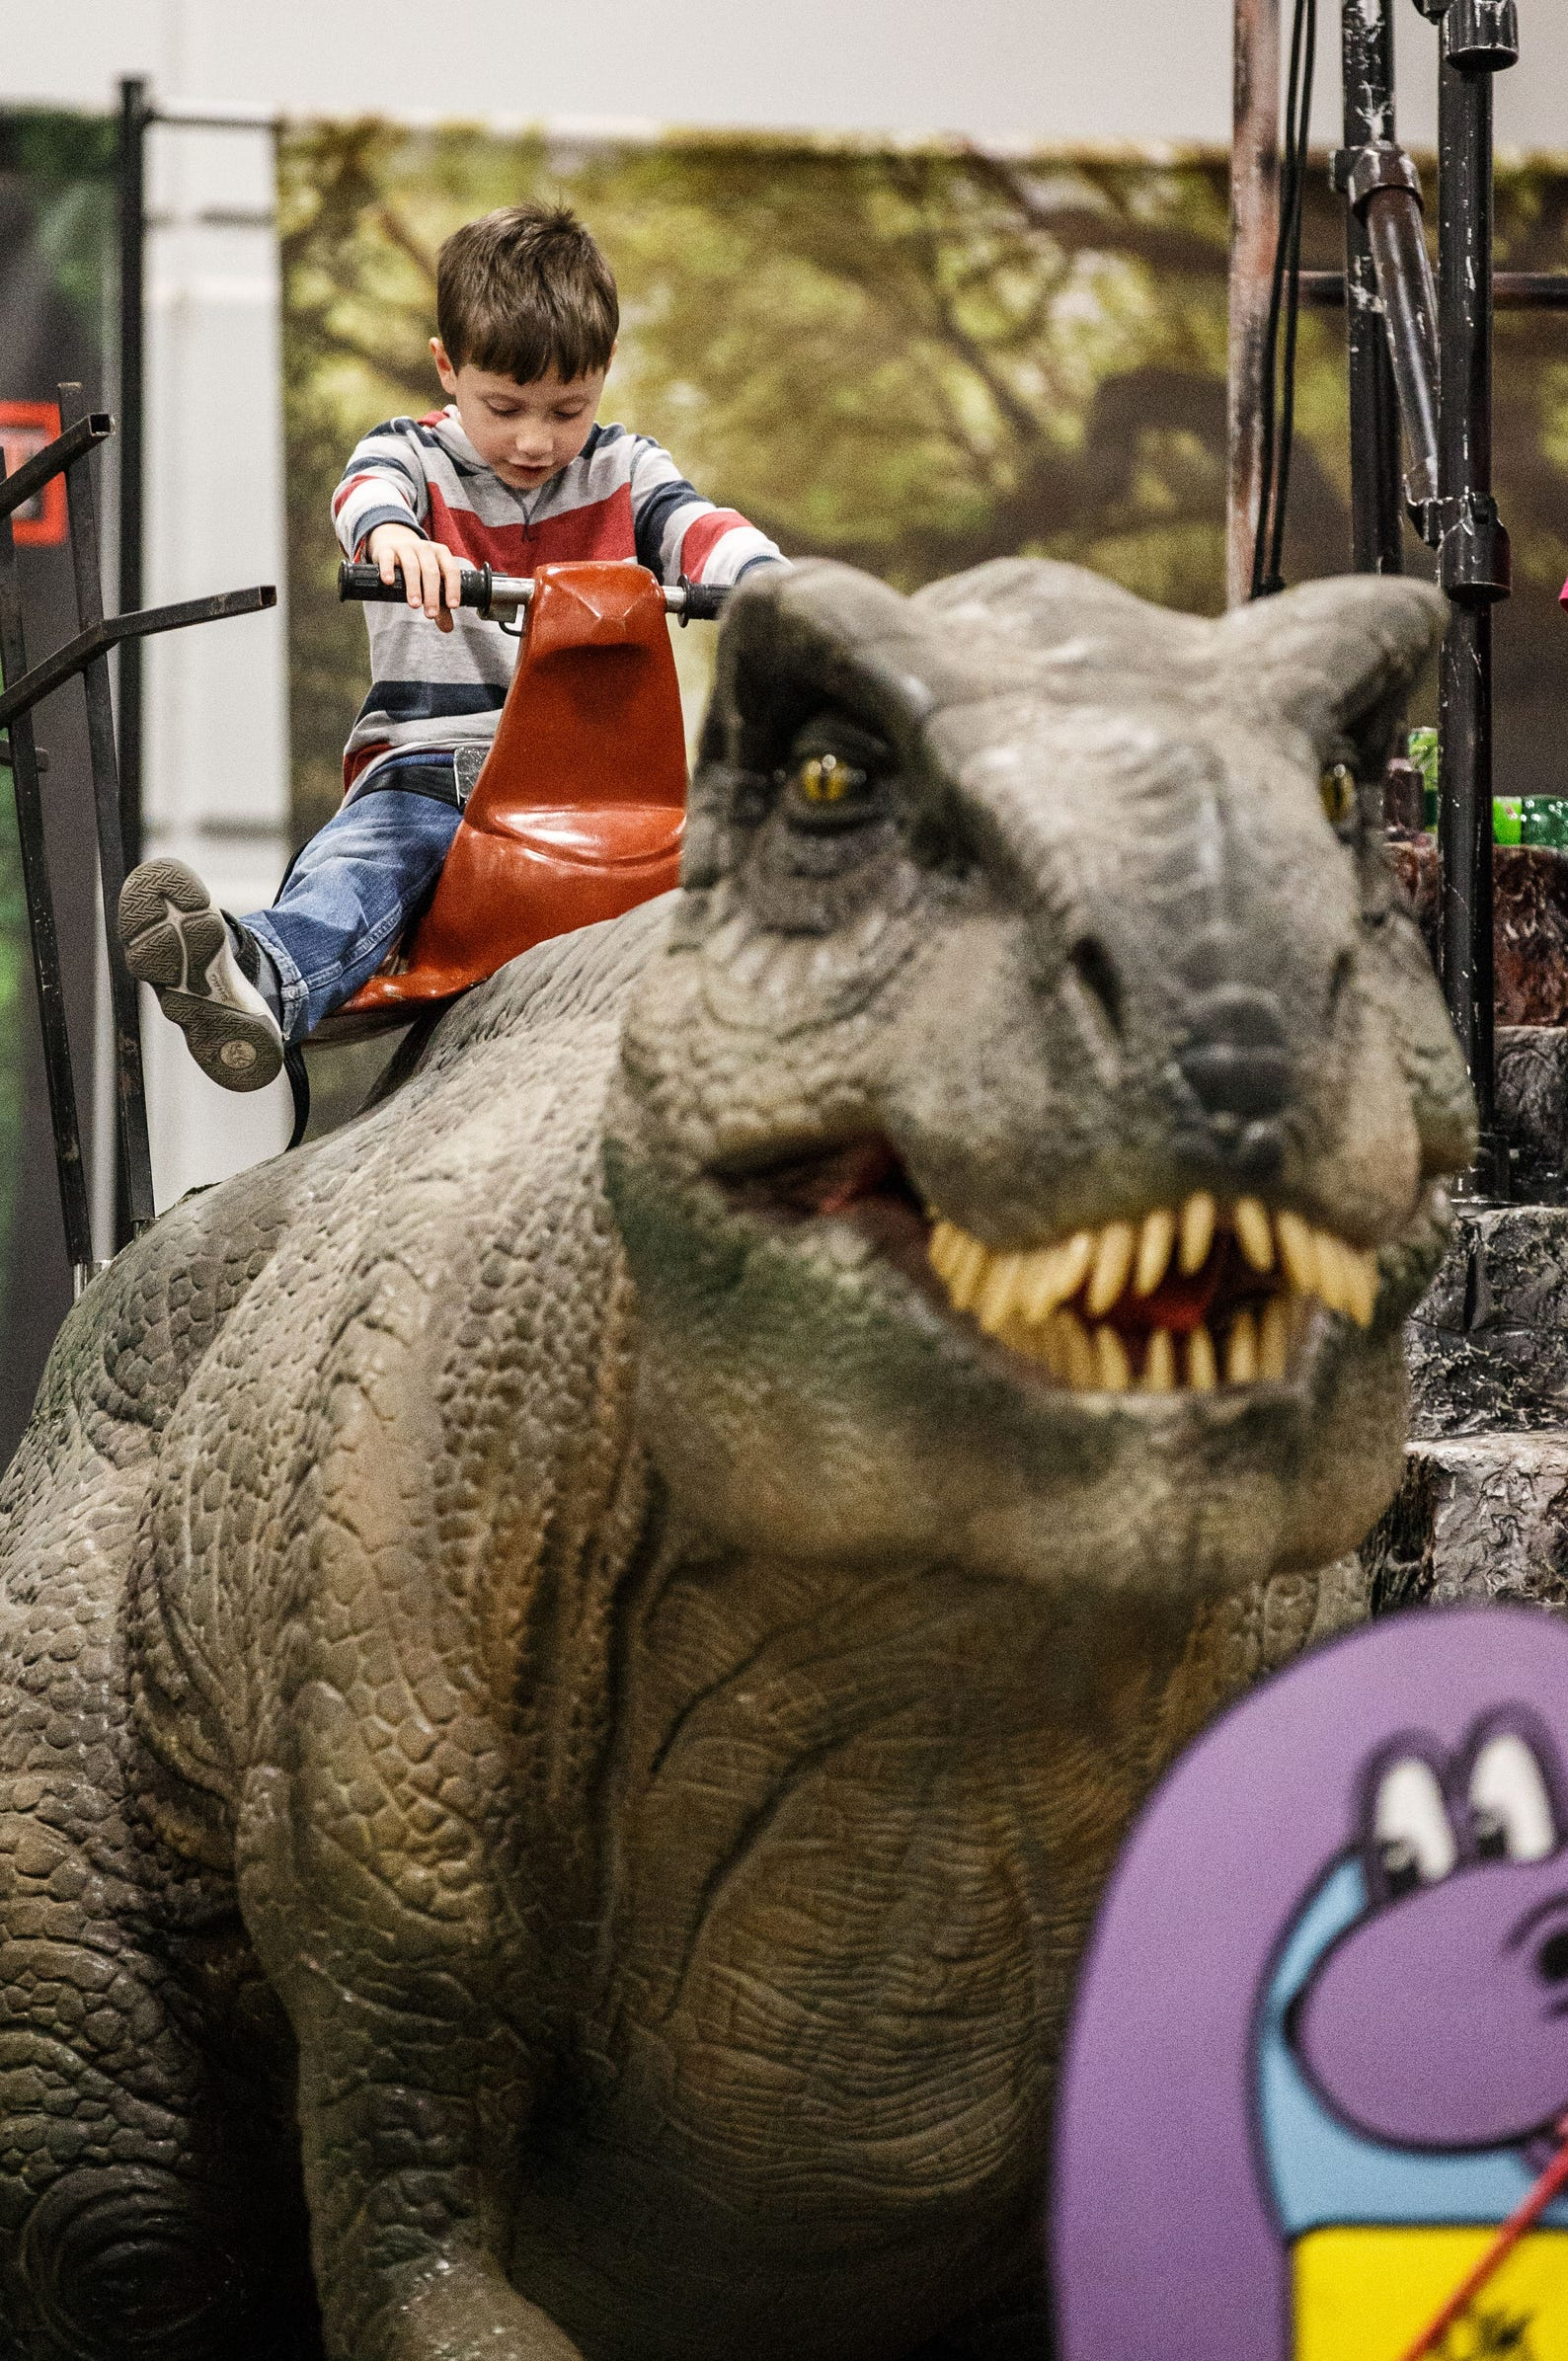 Photos: Jurassic Quest brings dinosaurs to life at State